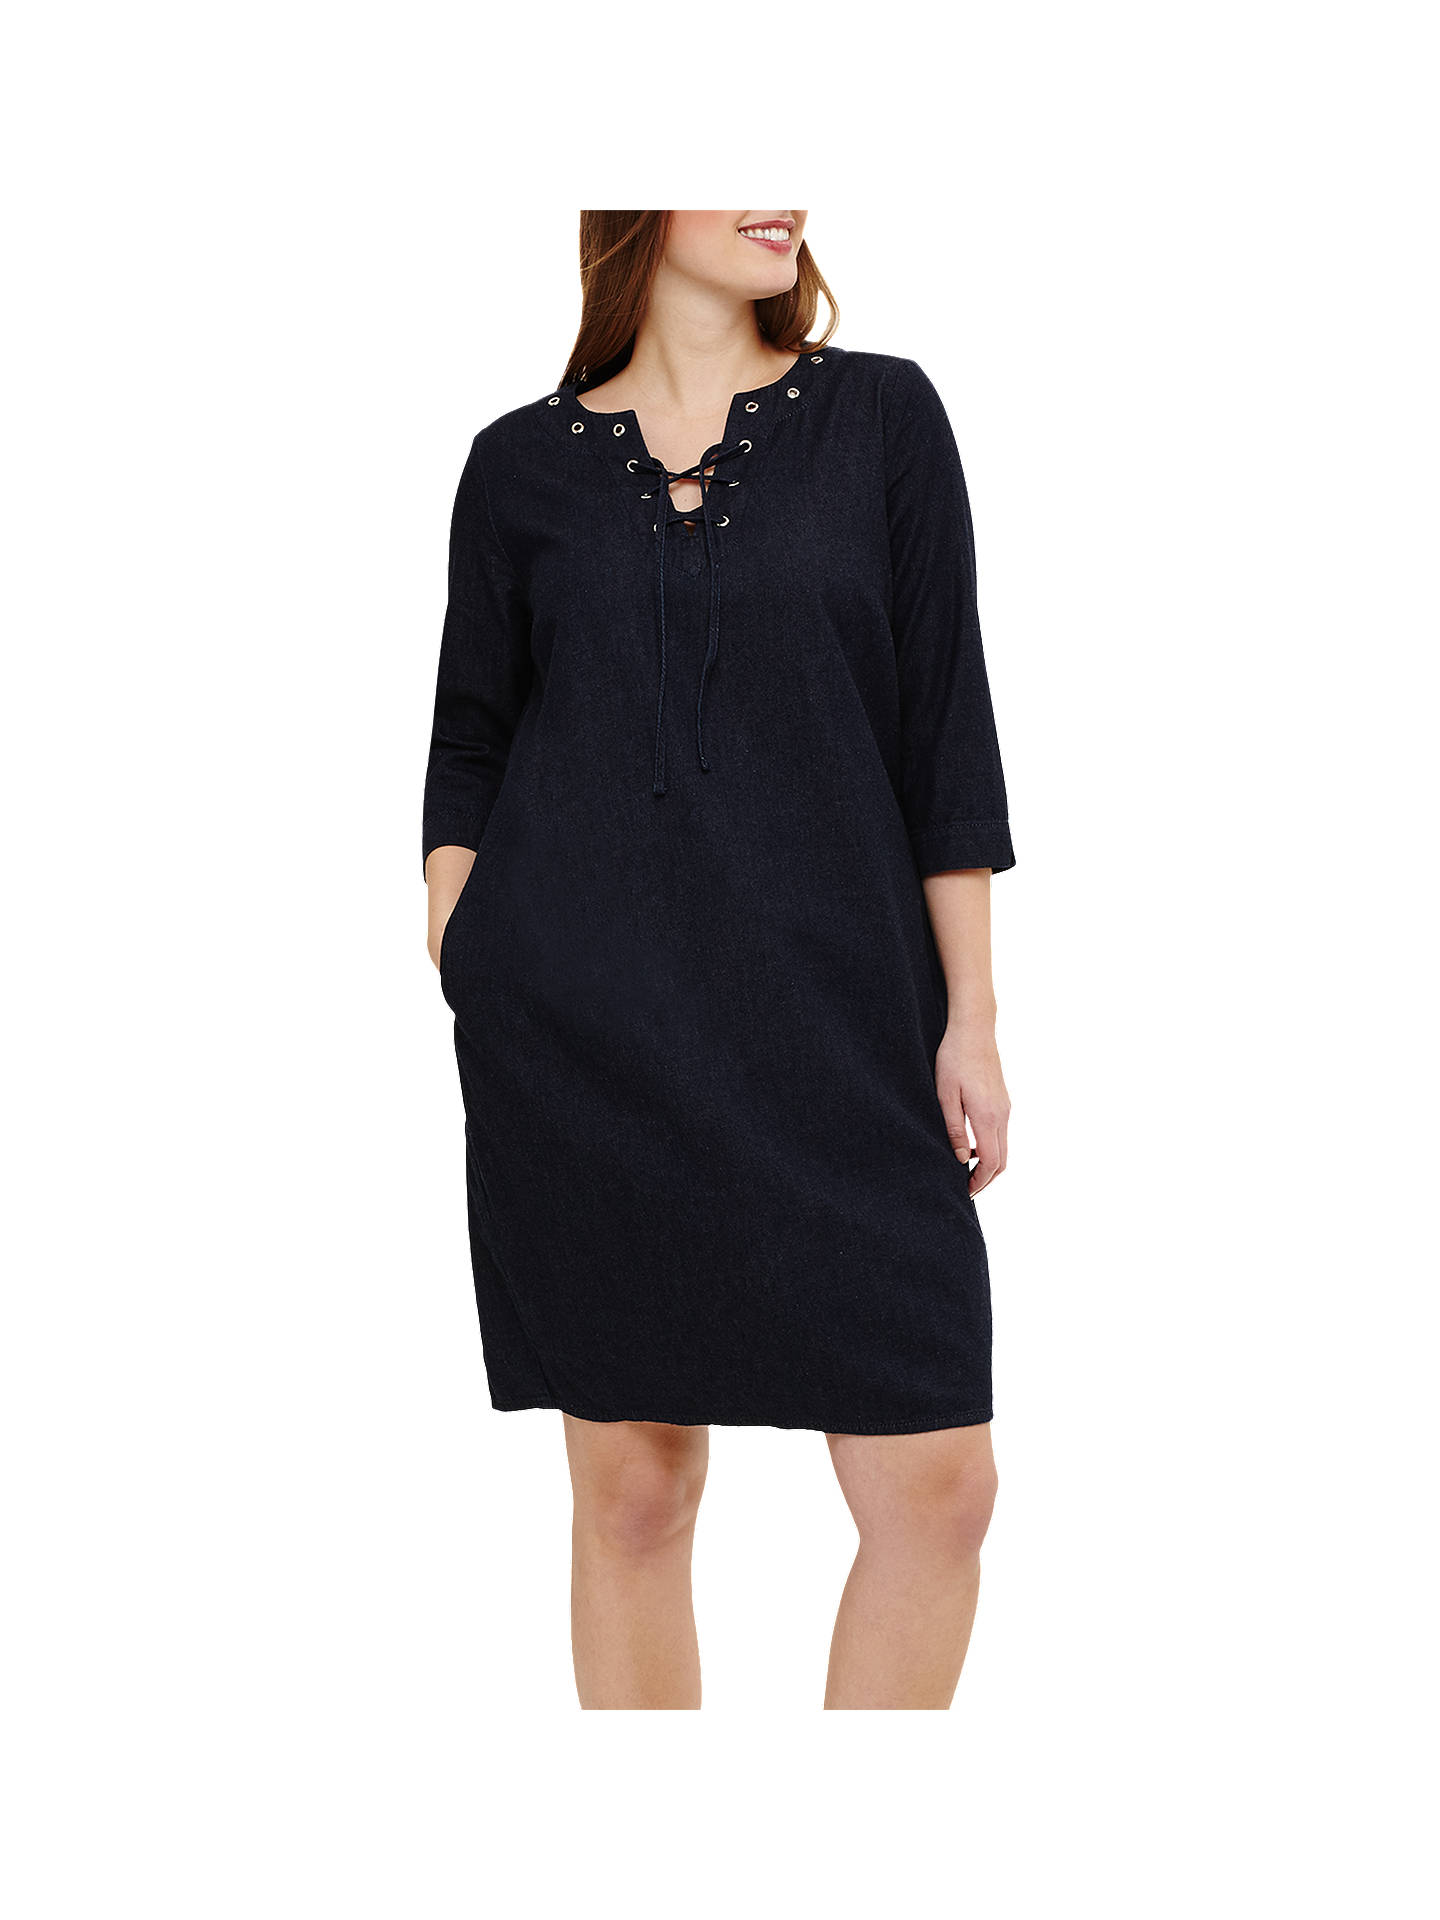 BuyStudio 8 Mabel Denim Dress, Dark Blue, 12 Online at johnlewis.com